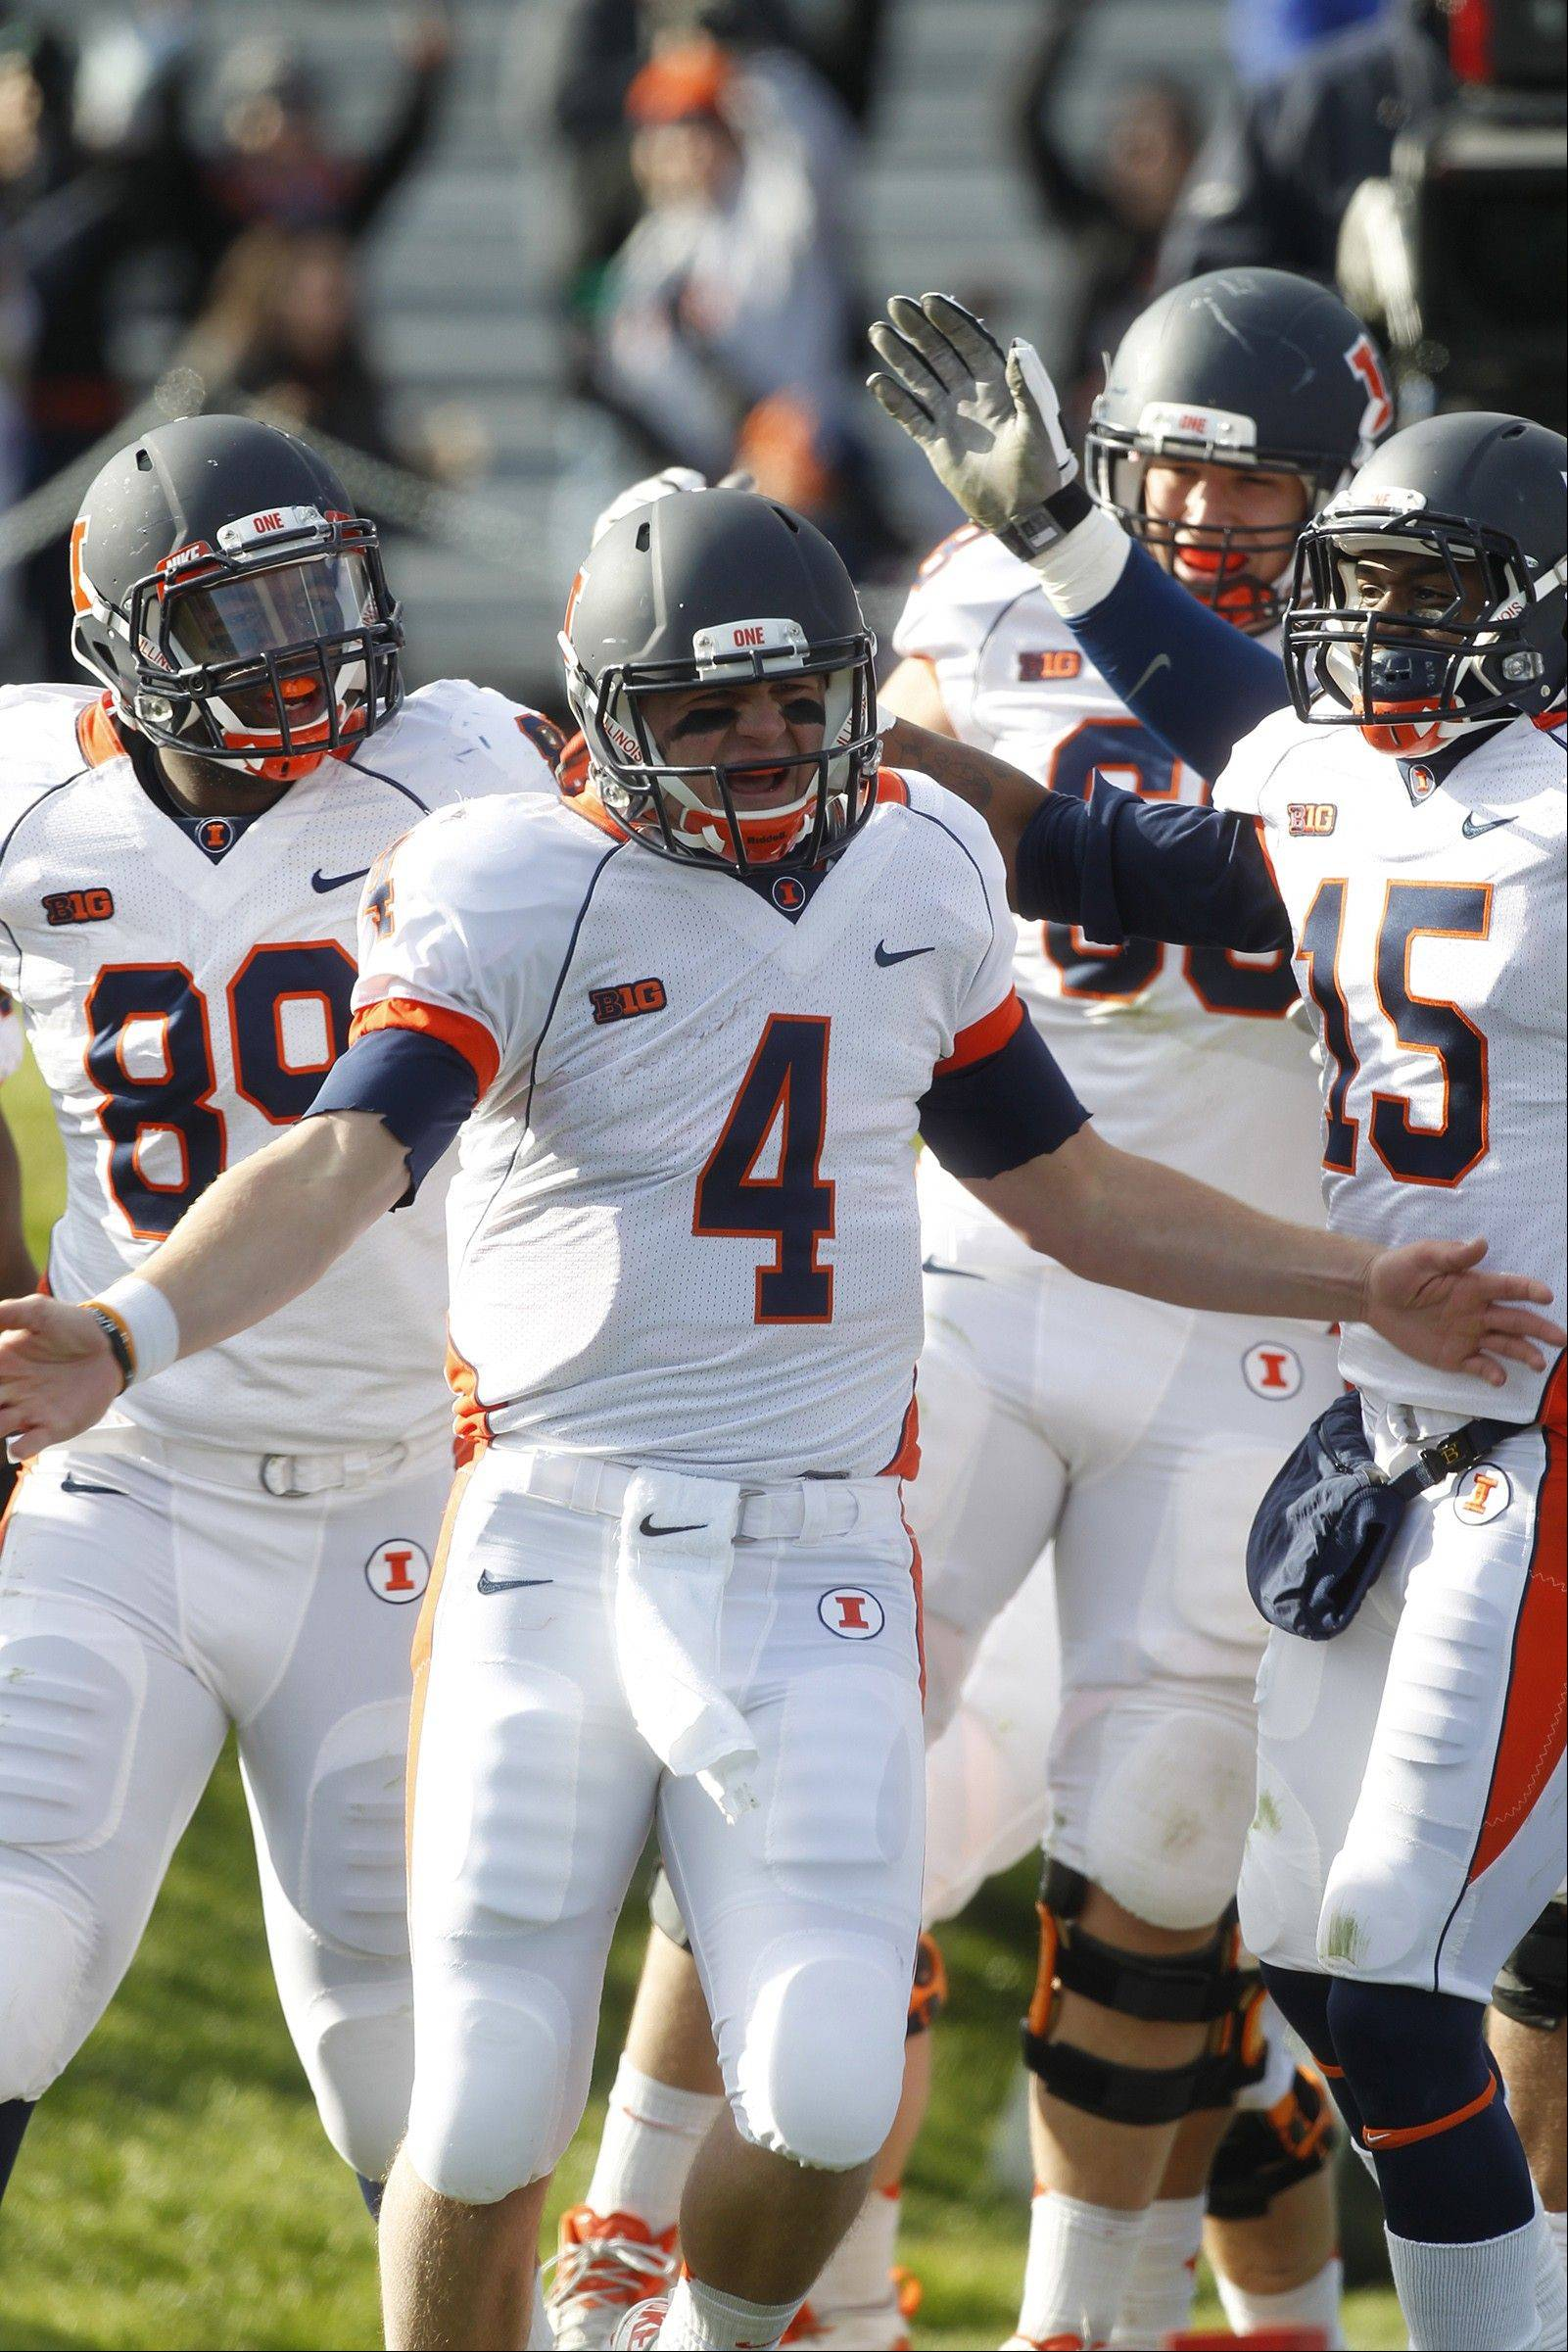 Former Wheaton Warrenville South quarterback Reilley O'Toole says the 2013 Illini team has a stronger bond this season, especially in the QB ranks.